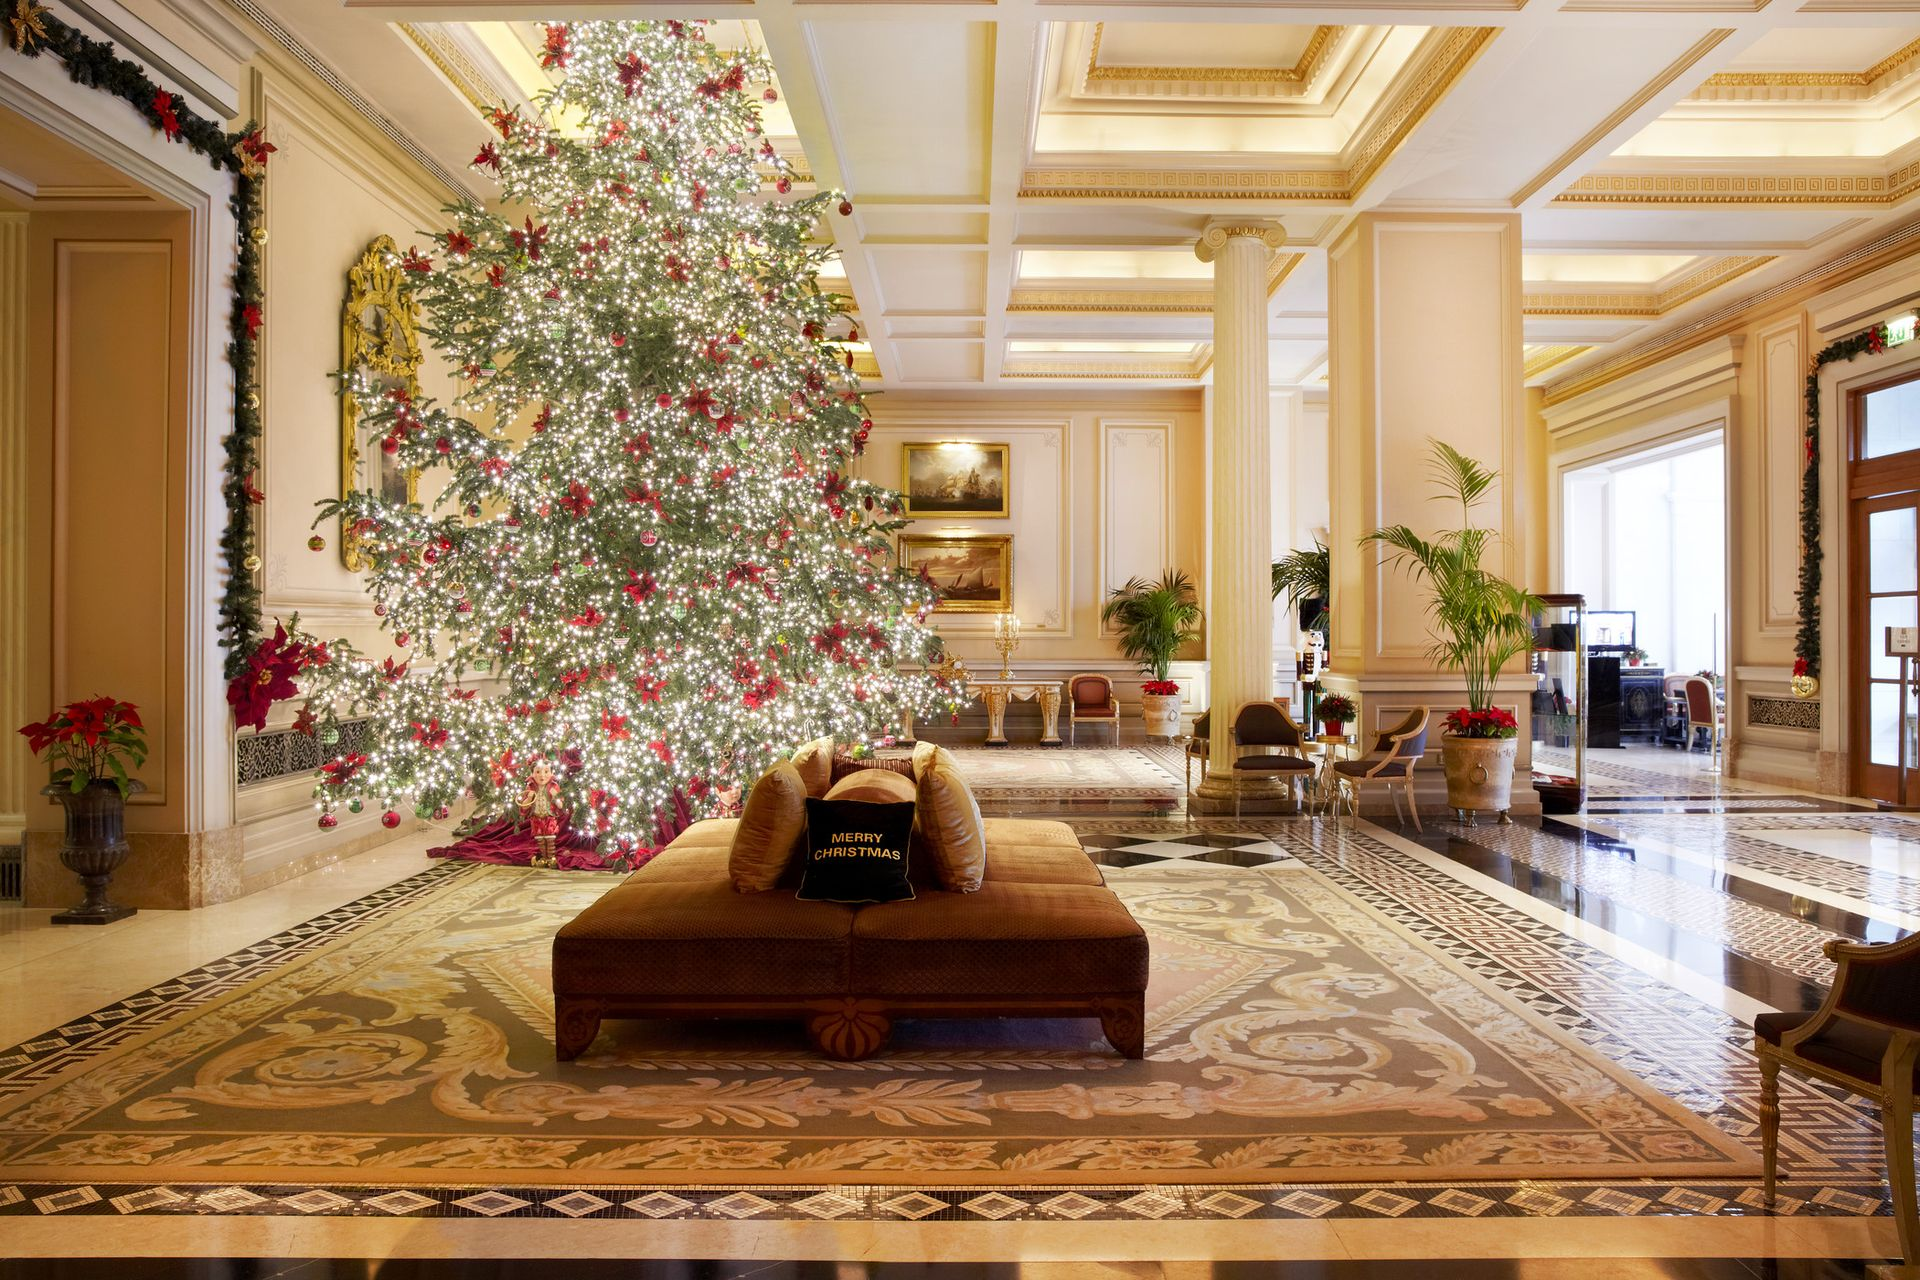 Decoration Hotel Christmas Festivities At Hotel Grande Bretagne King George